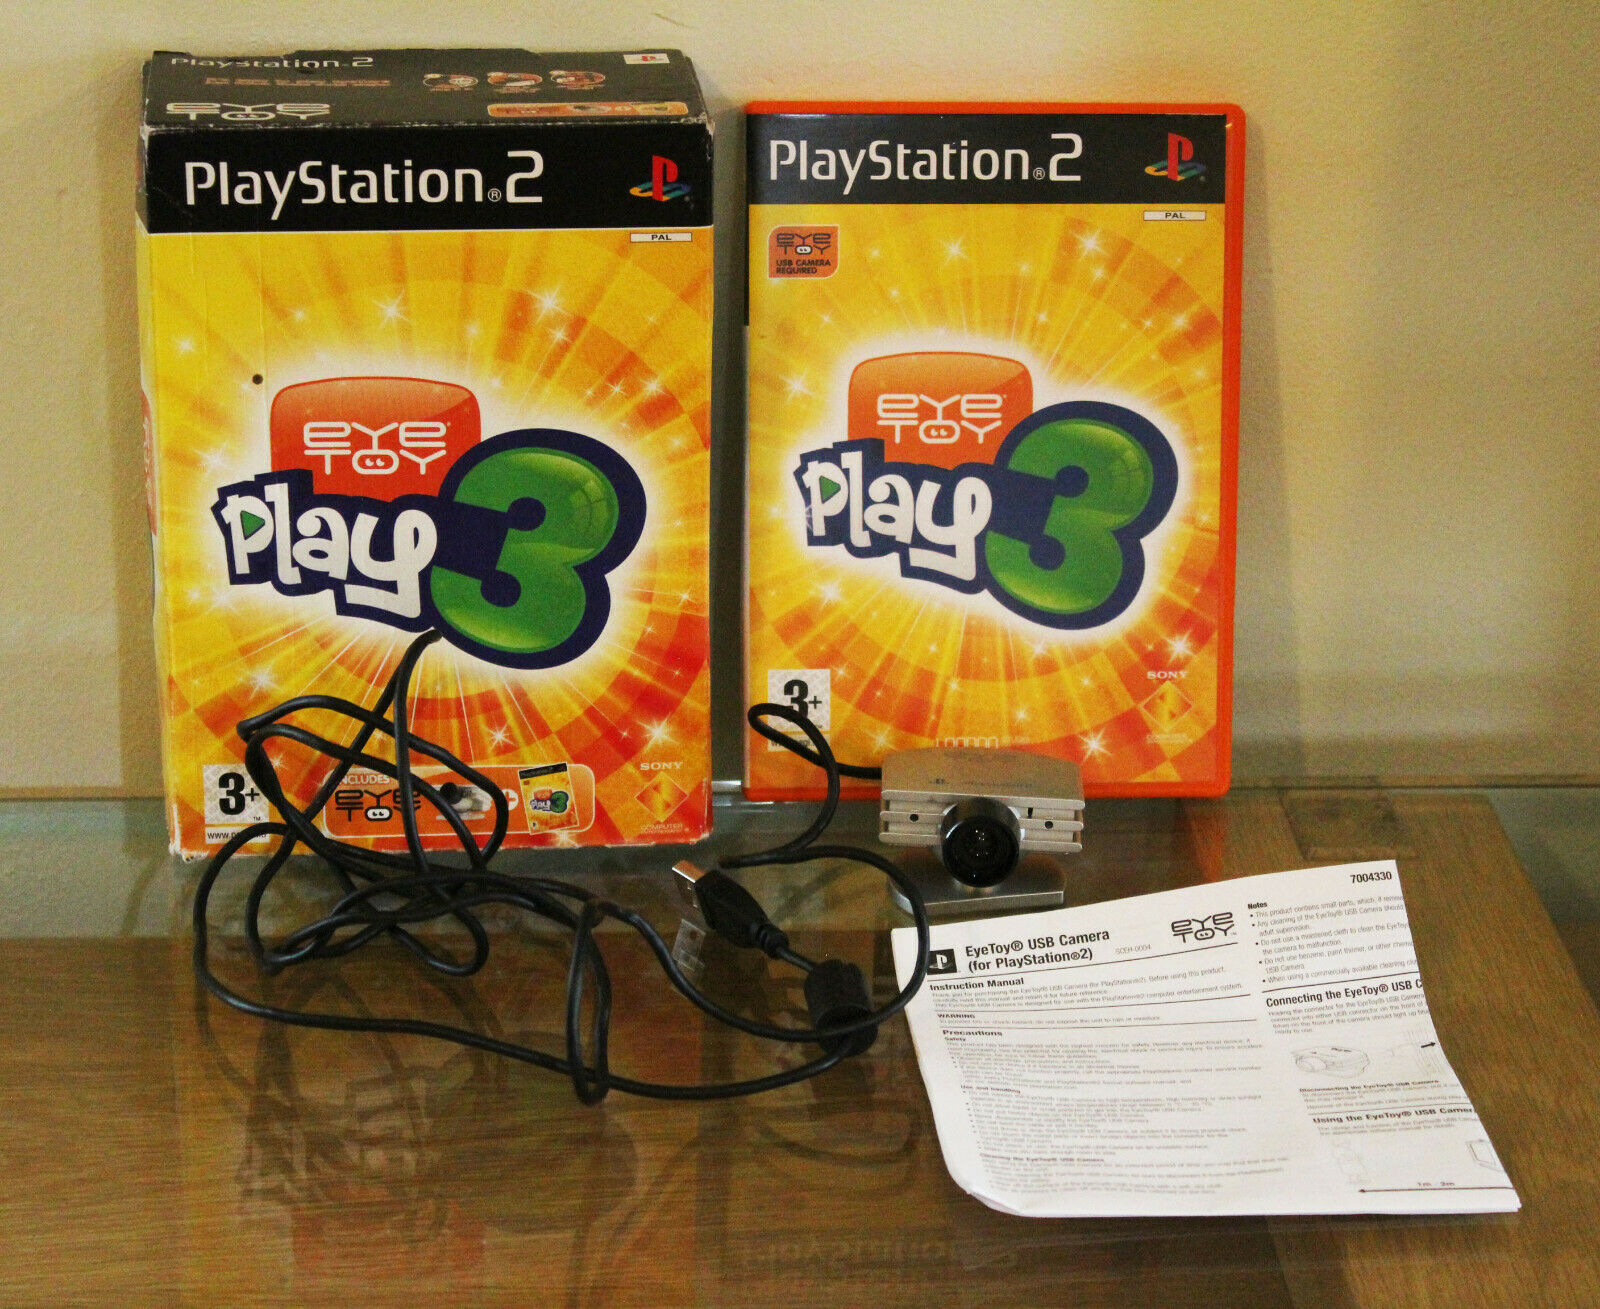 Sony Playstation 2 PS2 EYE TOY Play 3 BOXED With Camera & Game